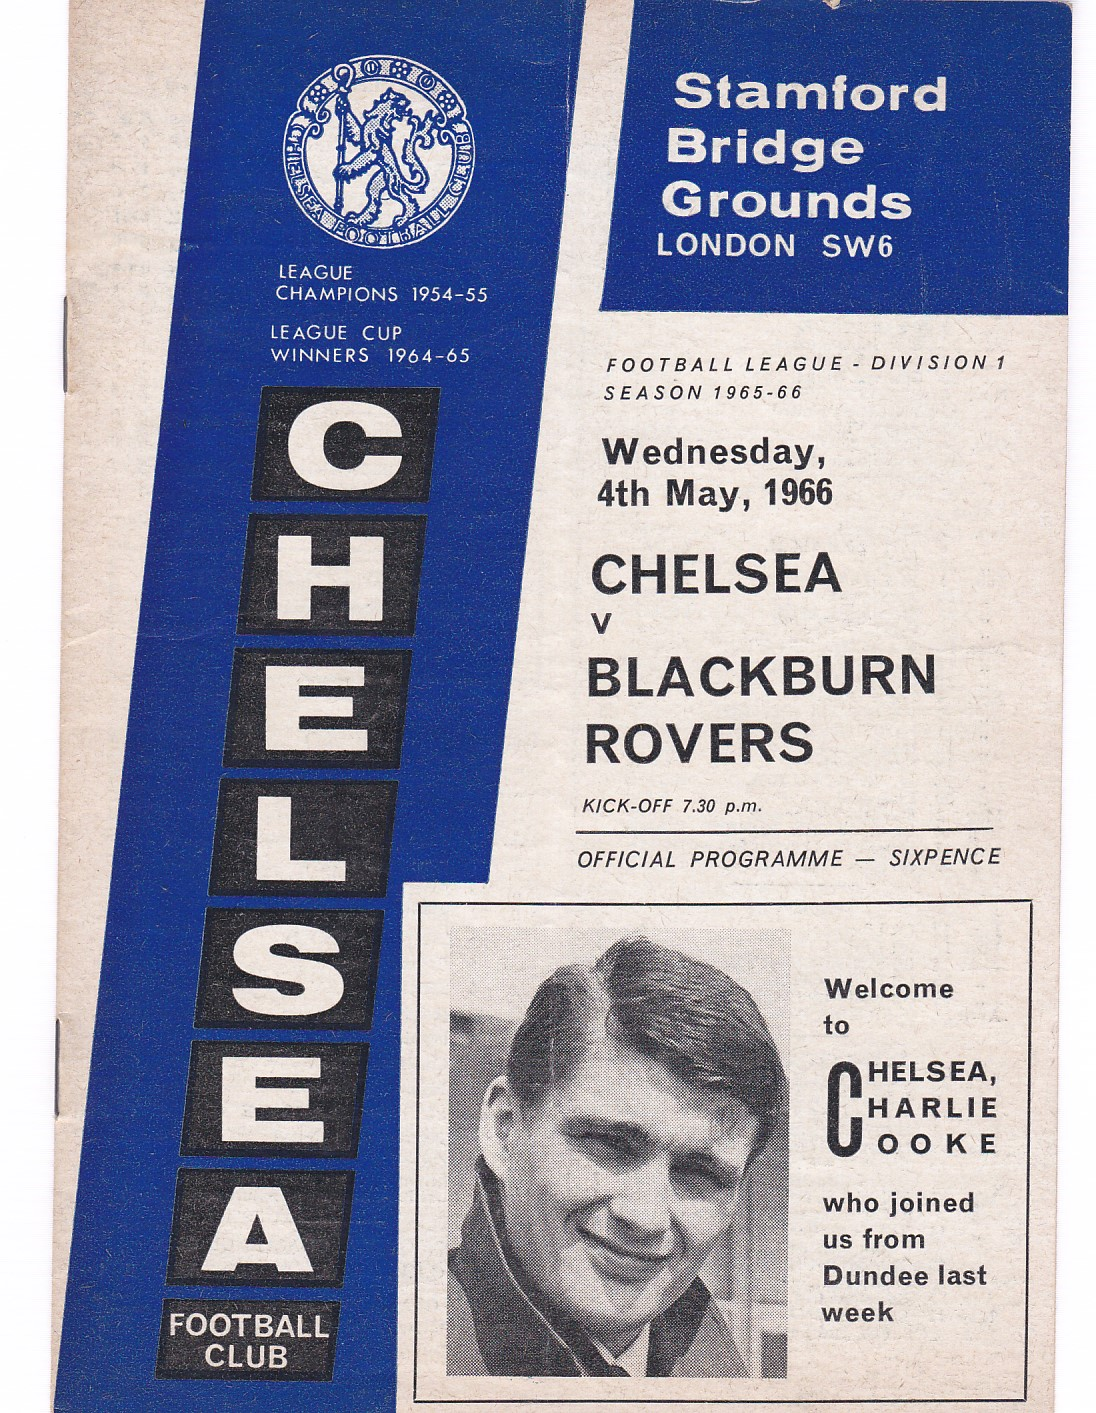 Chelsea v Blackburn Rovers 1966 May 4th vertical crease score and team change in pen